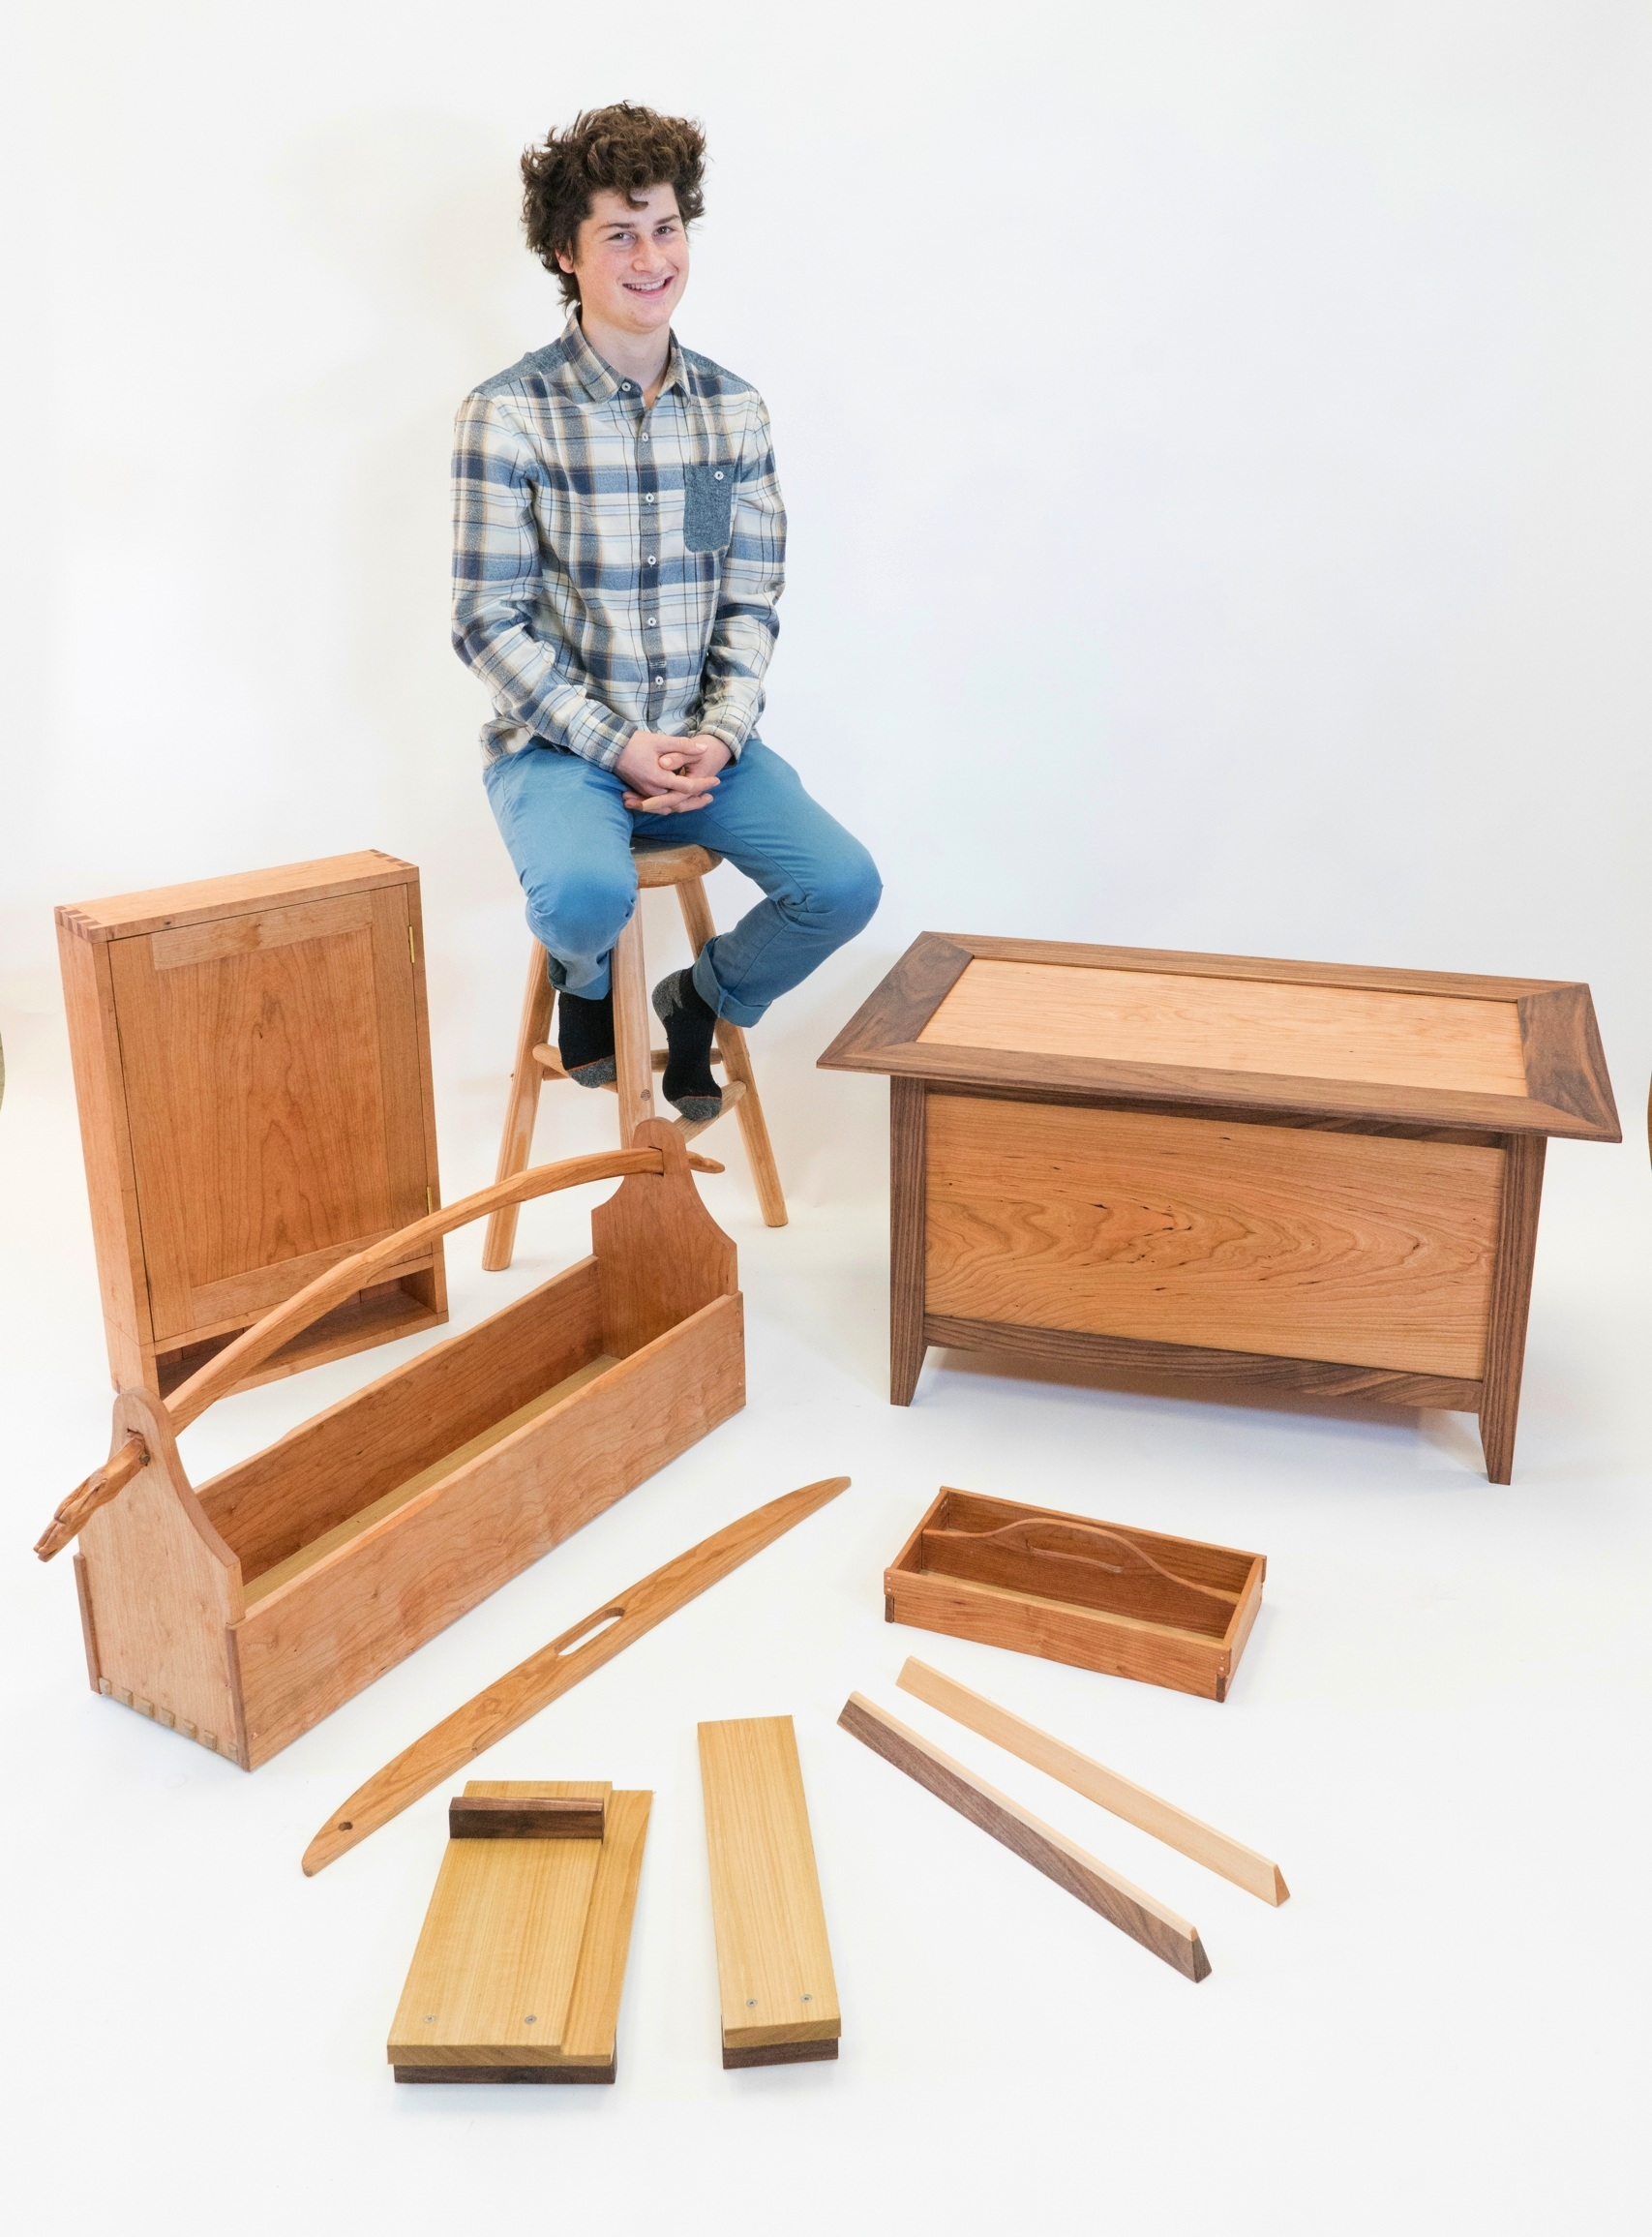 Garrett Kitchen, Foundations of Woodworking Graduate